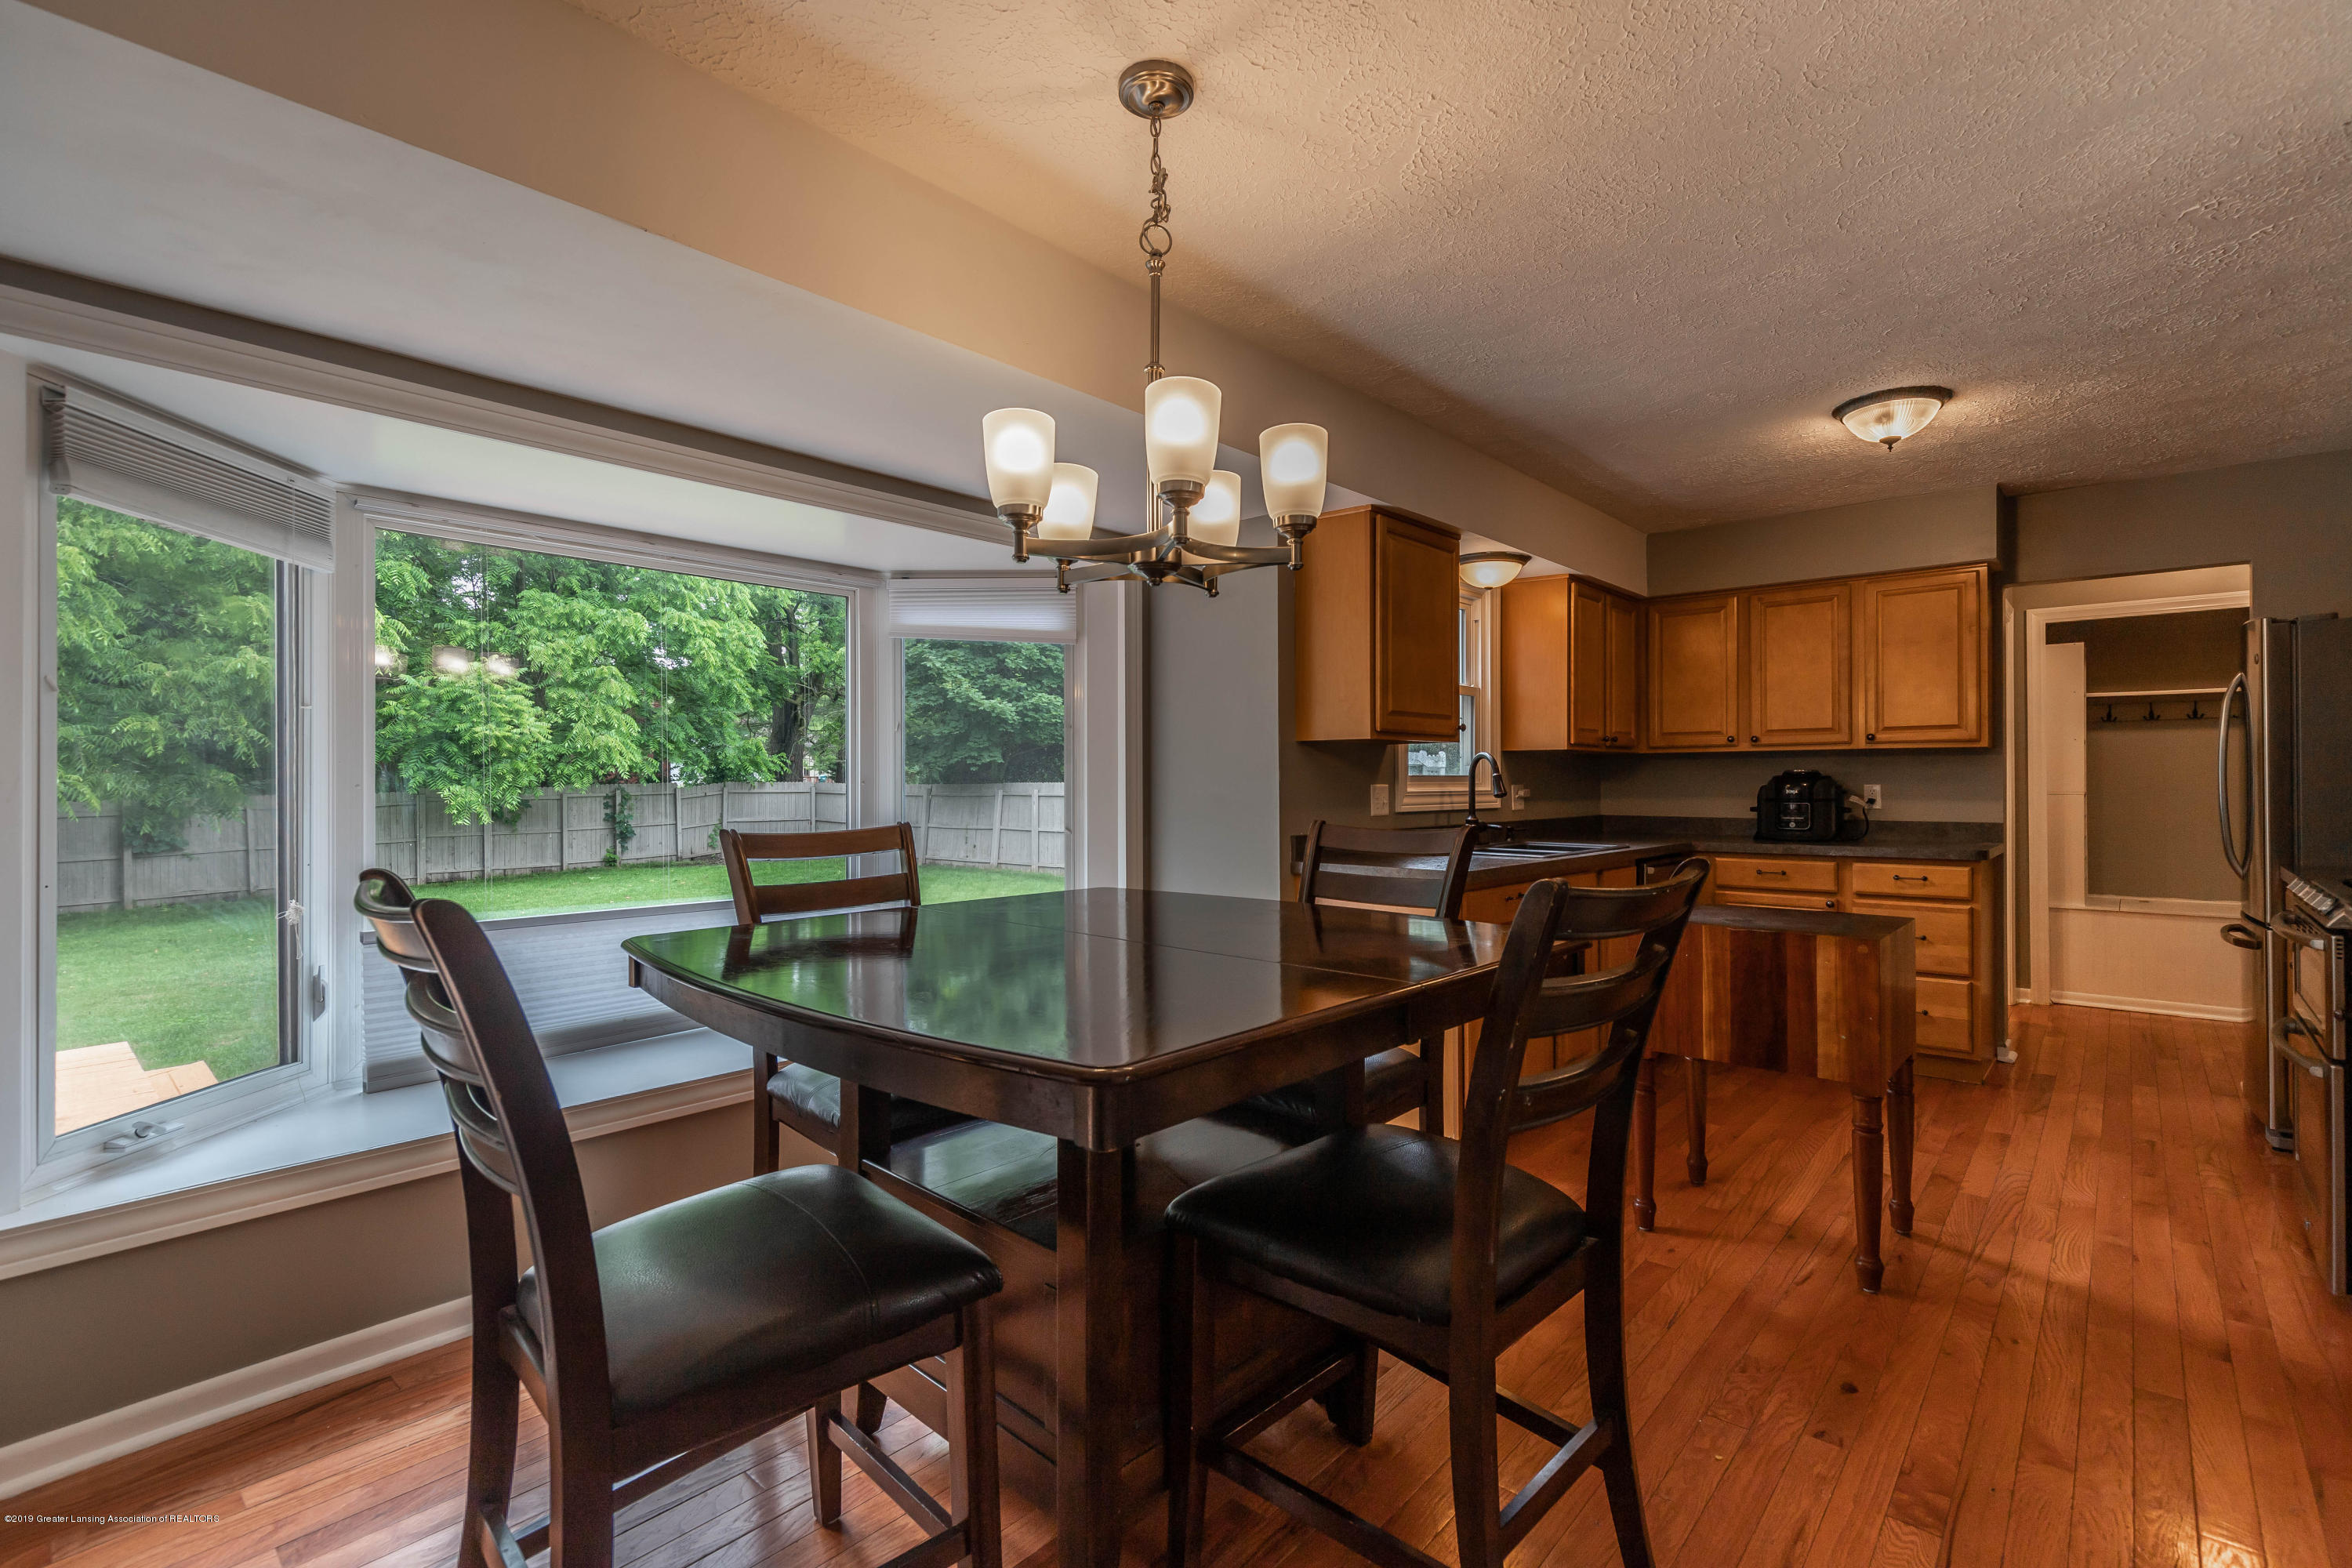 2497 Graystone Dr - 8.  Kitchen View 2 - 10